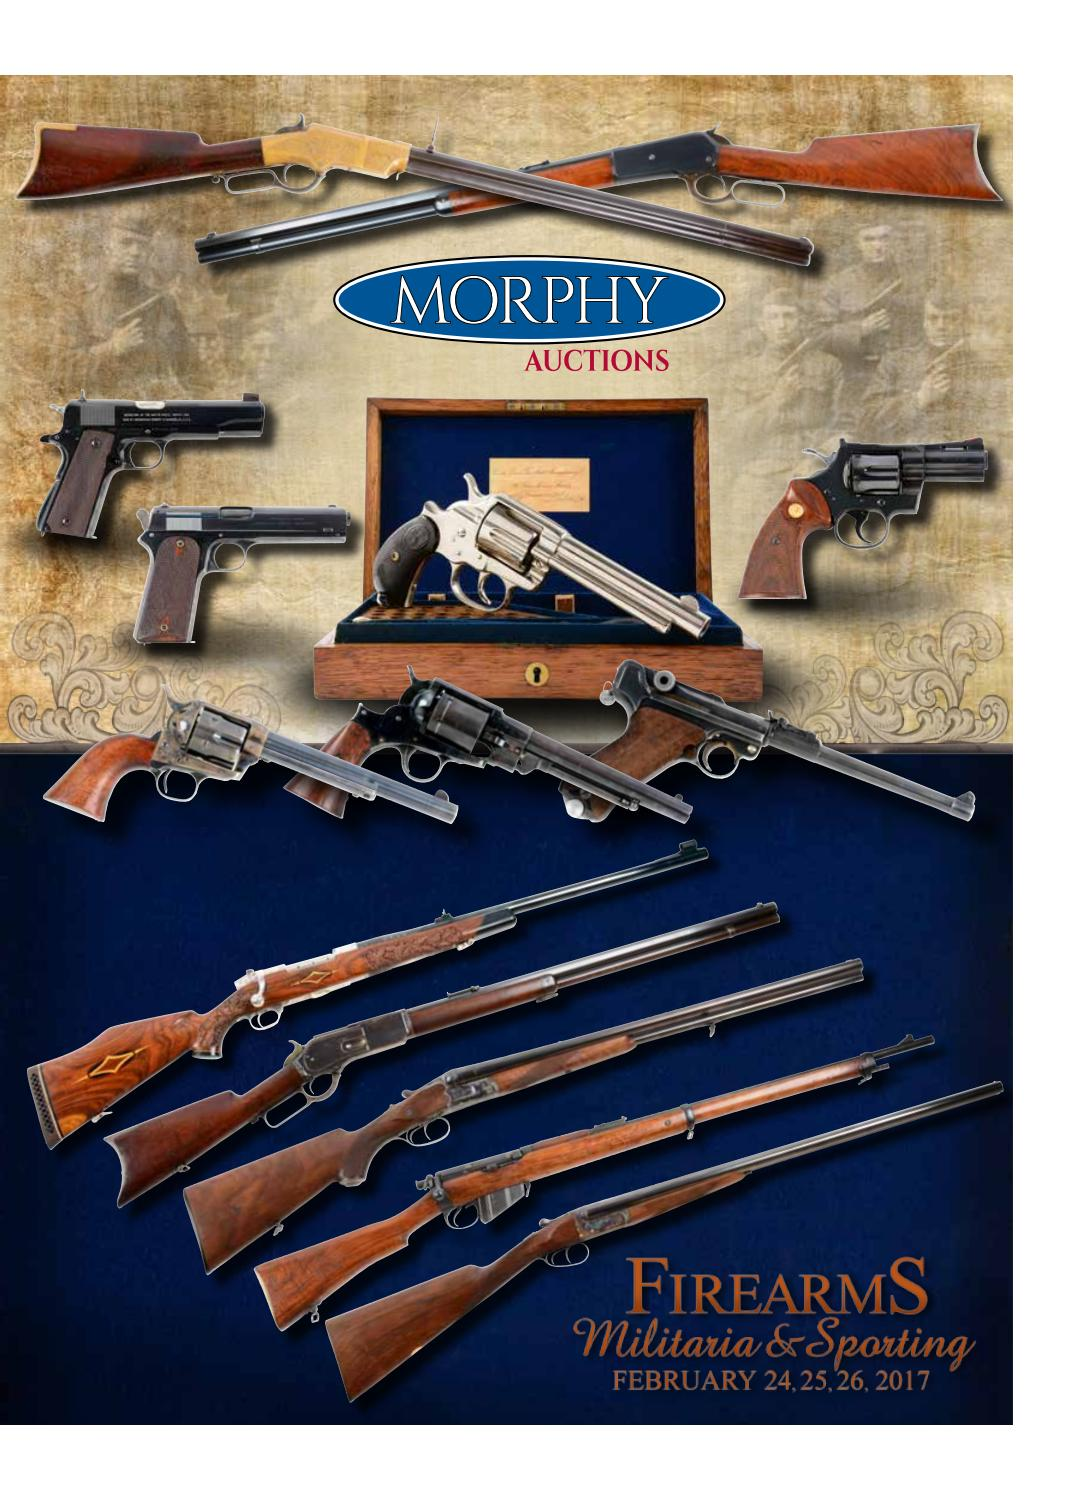 fbacf3cde556a 2017 February 24-26 Firearms by Morphy Auctions - issuu